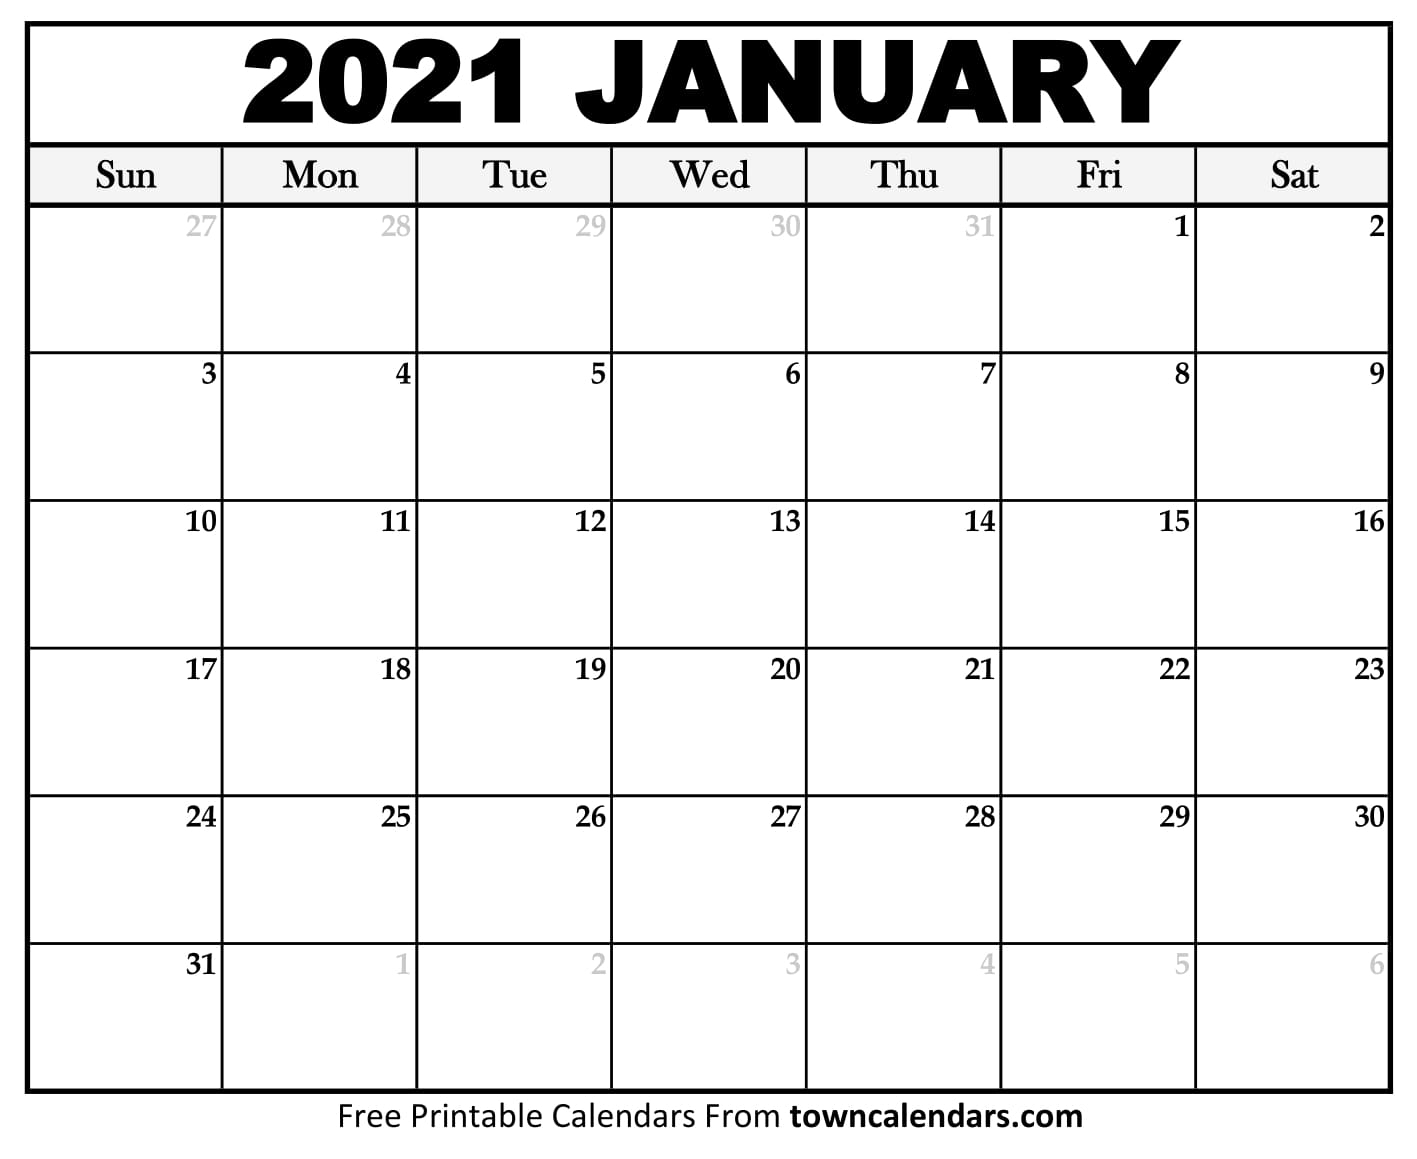 Printable January 2021 Calendar - Towncalendars